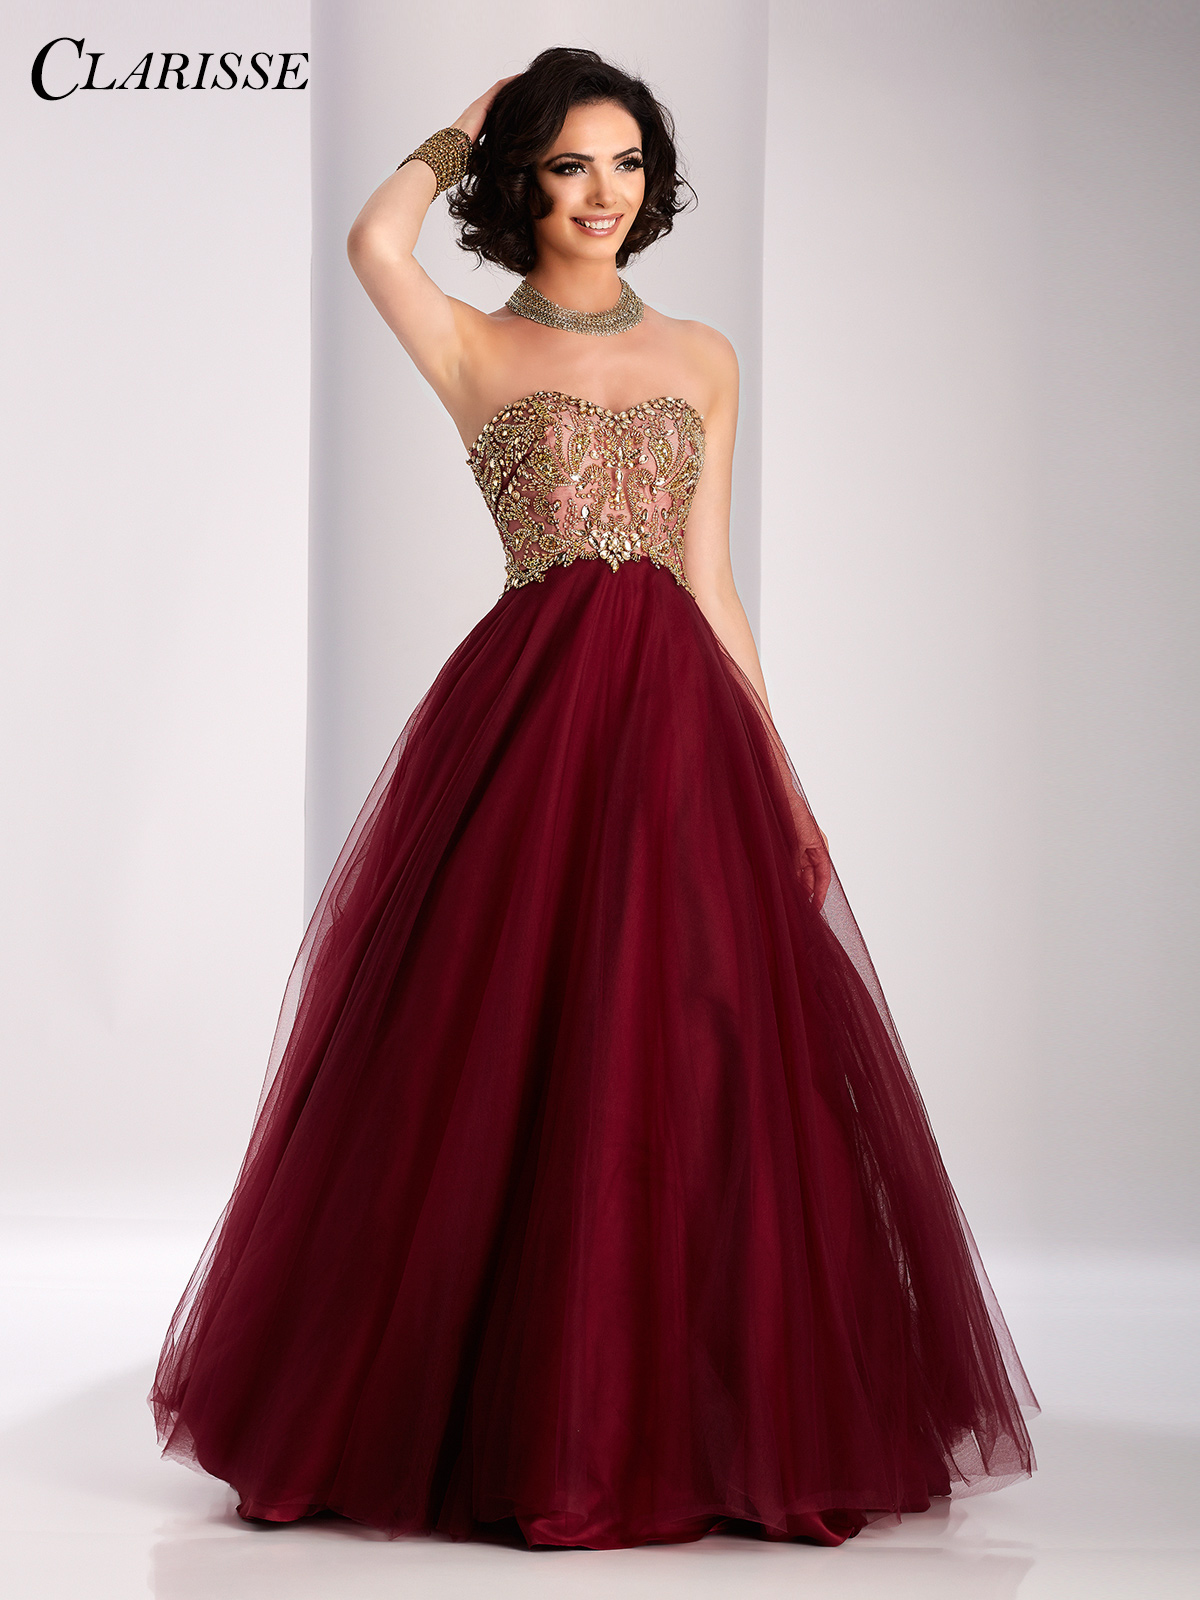 Clarisse Prom Dress 3011 | Promgirl.net